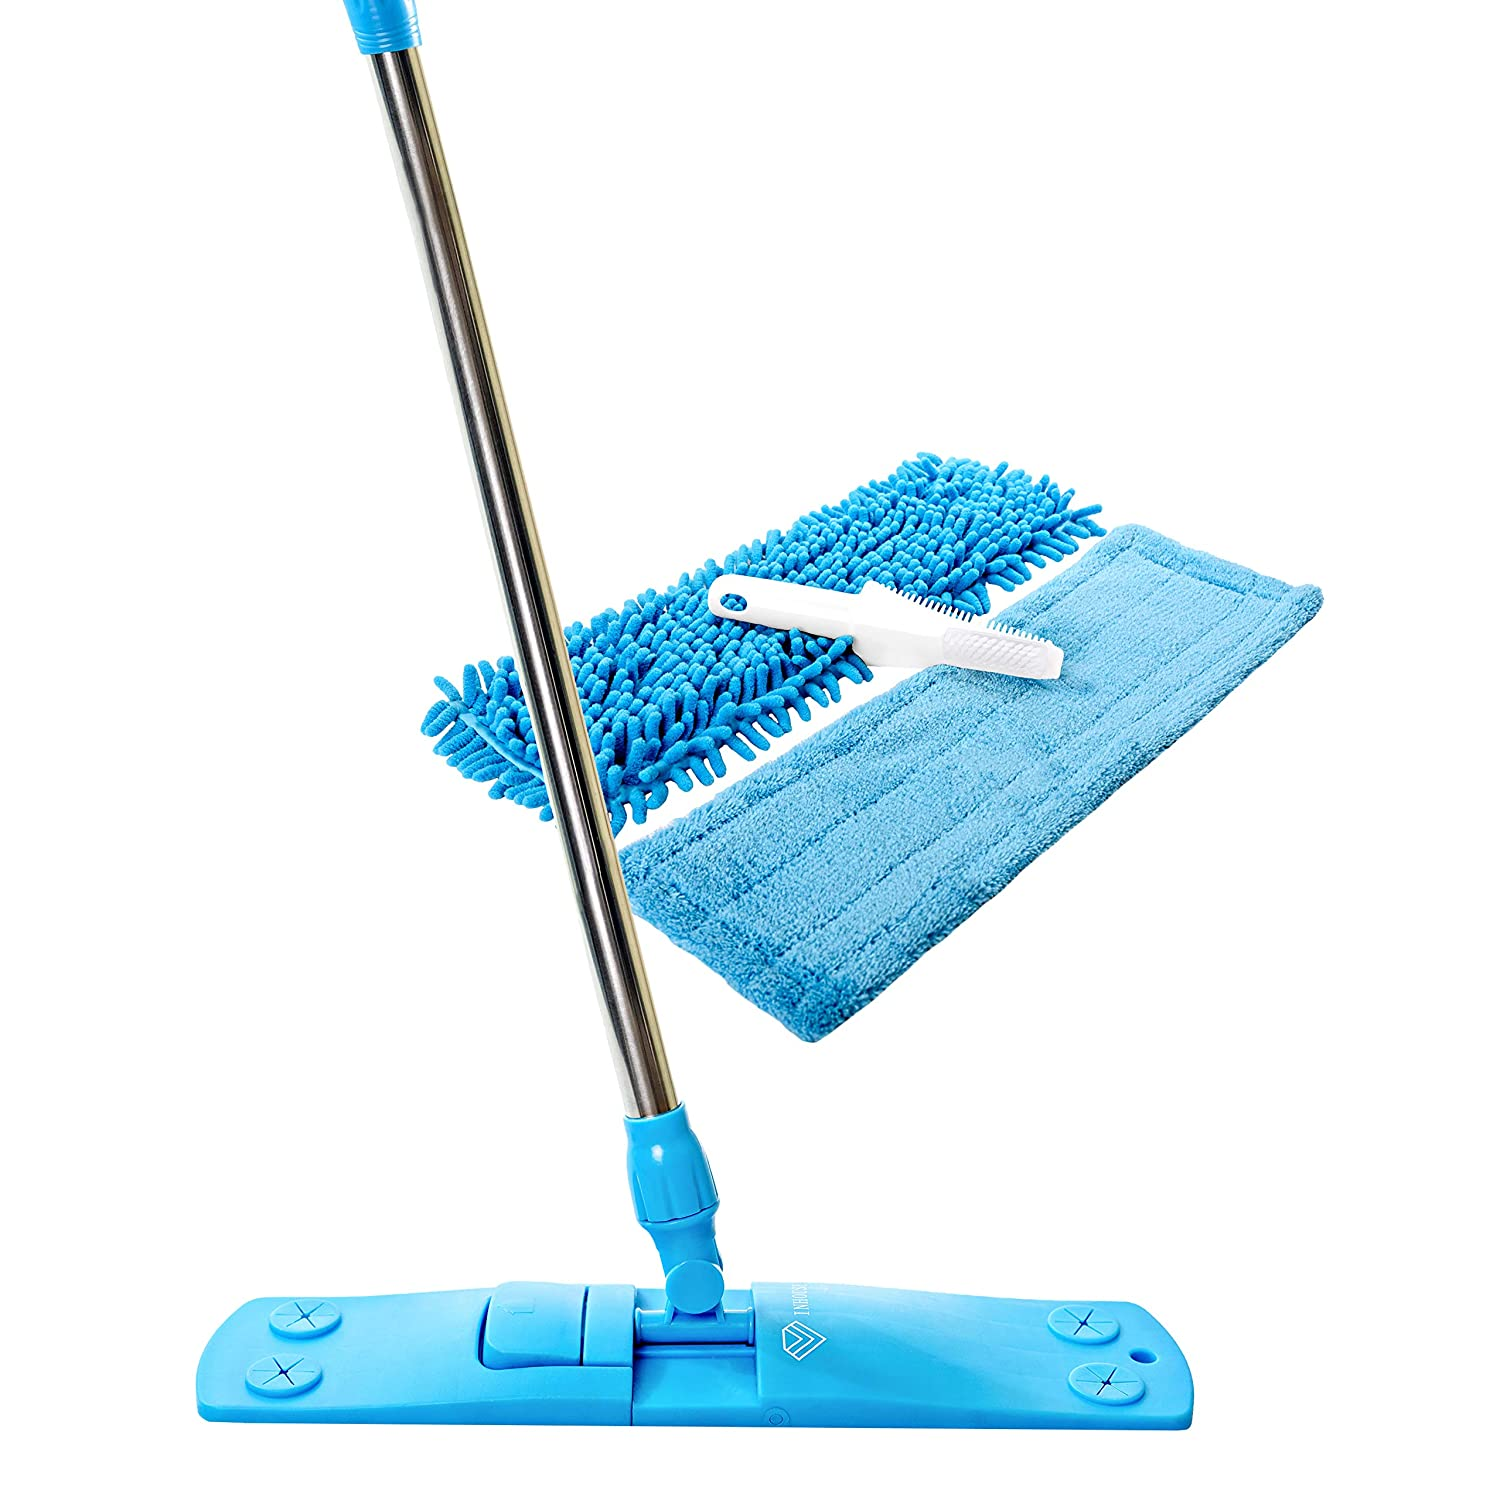 Professional Dust Mop with Enhanced Holding Mechanism & Stainless Steel Telescopic Handle – Floor Cleaner with 2 Microfiber Mop Pads & Brush Cleaner – For Wet or Dry Floor Cleaning